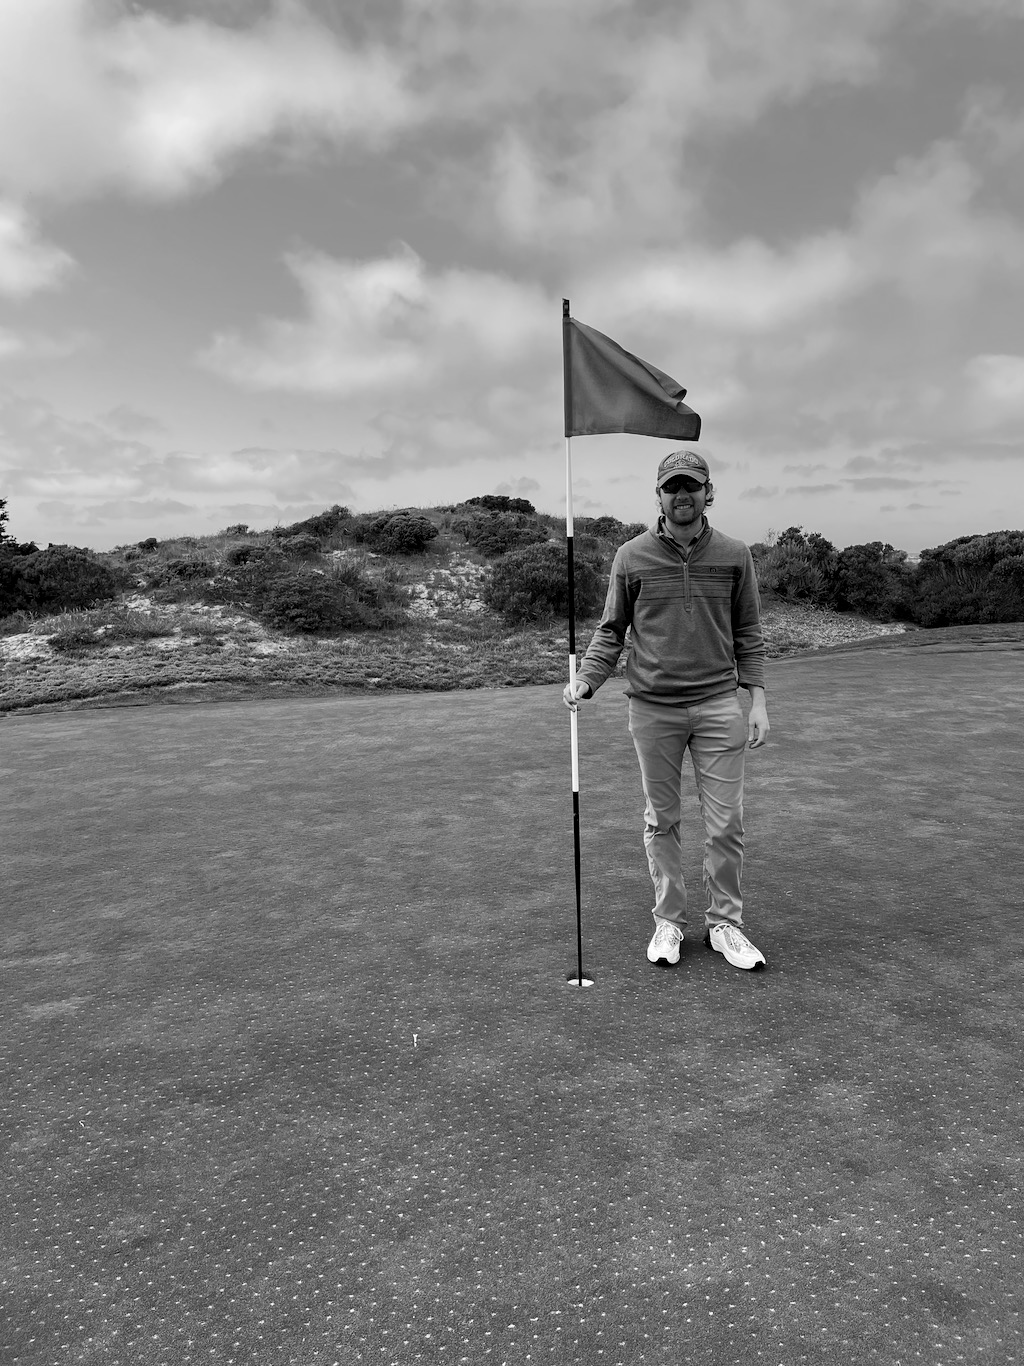 I nearly made double eagle (2 on a par 5) on the last hole at Spanish Bay.